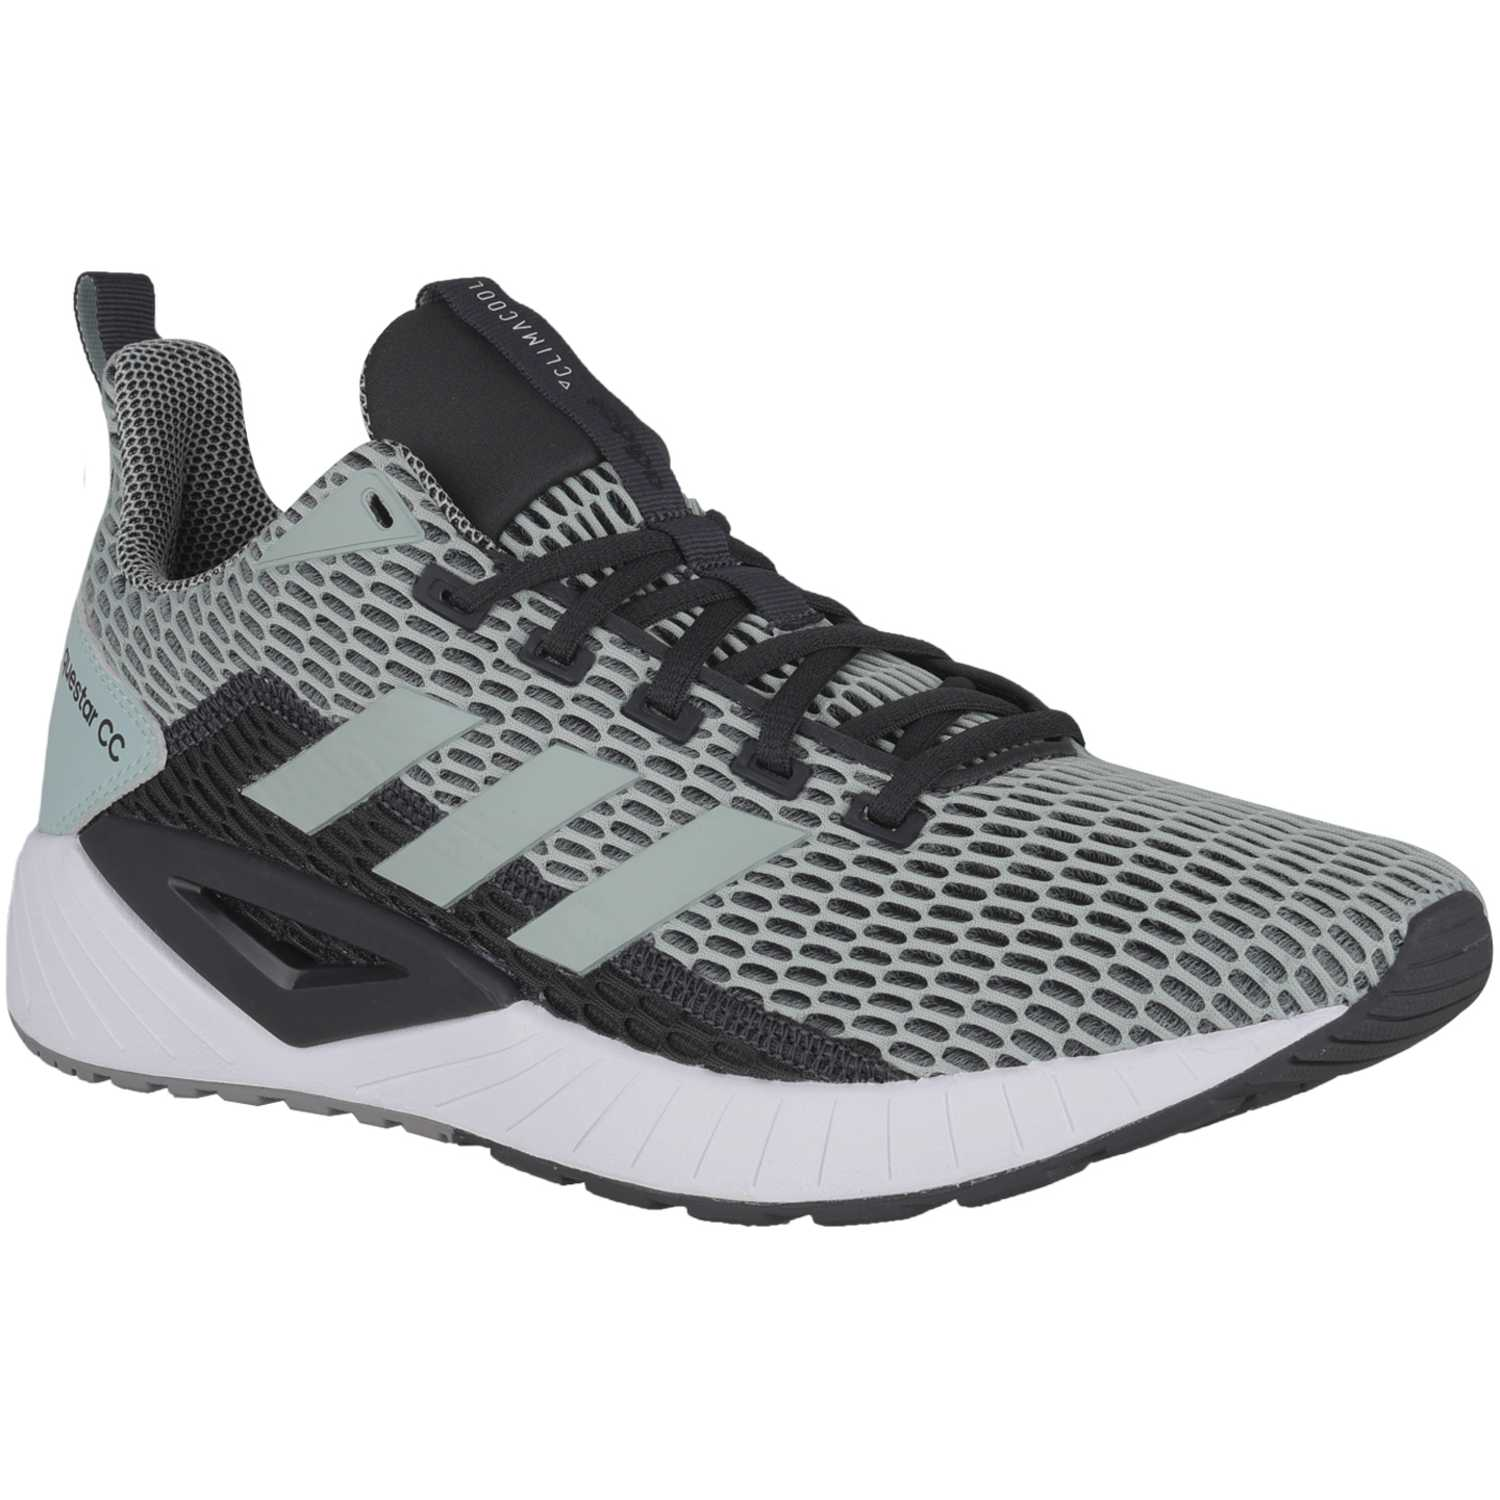 buy popular 1f7c9 d1cd4 Zapatilla de Hombre adidas NEO Gris   turquesa questar cc